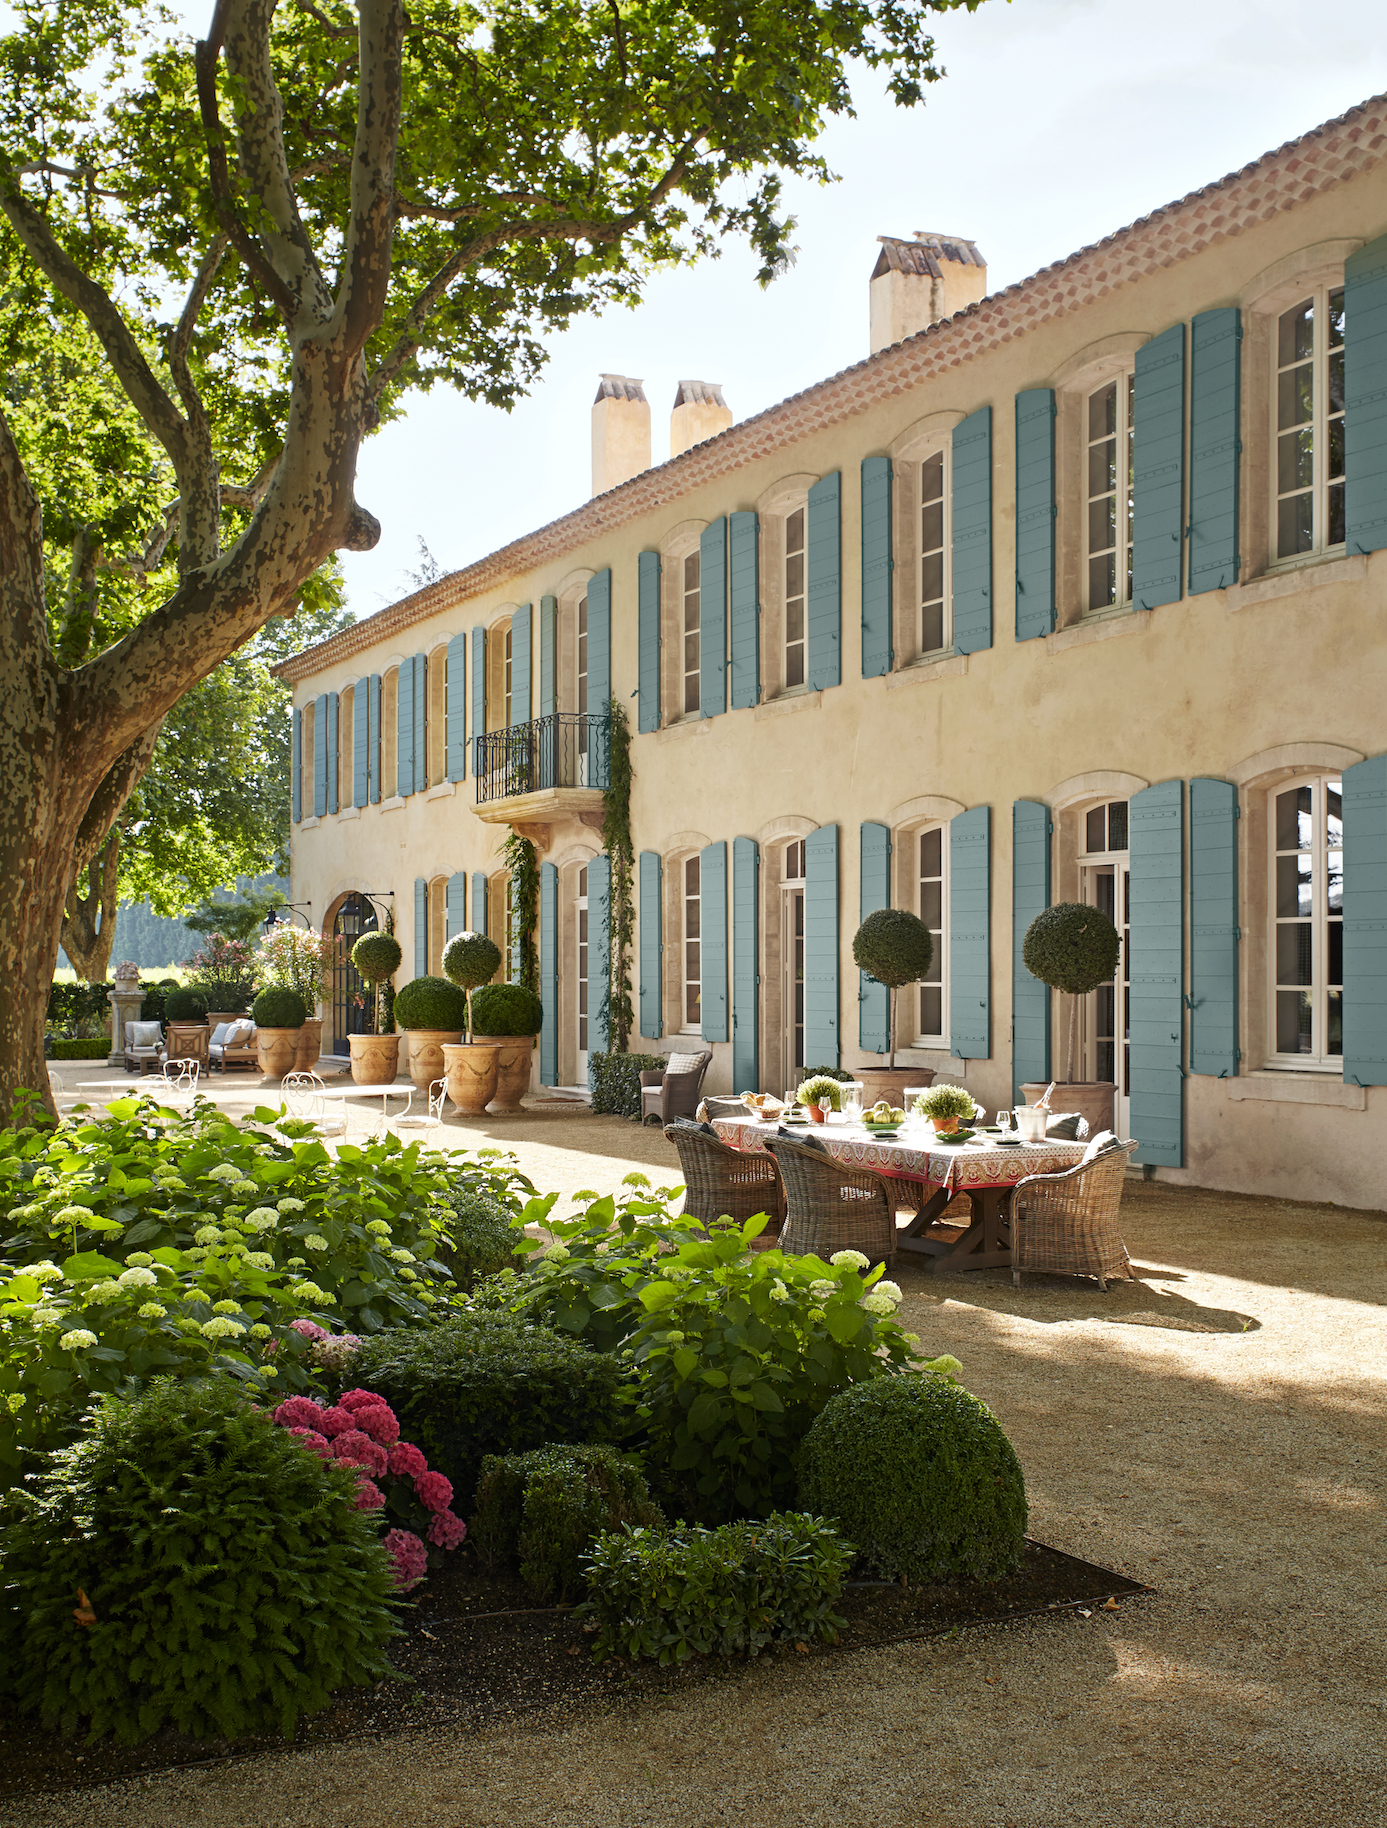 15 Beautiful French-Style Gardens - Best French Garden Designs on garden fence ideas, courtyard and front walkway ideas, courtyard plans ideas, courtyard furniture ideas, courtyard gardening ideas, stone courtyard design ideas, bird bath garden ideas, courtyard landscape design, courtyard terracotta, courtyard home ideas, cottage garden ideas, courtyard decorating ideas, house courtyard design ideas, outdoor courtyard design ideas, courtyard planting ideas, courtyard paver ideas, small courtyard ideas, front courtyard design ideas, enclosed courtyard ideas,